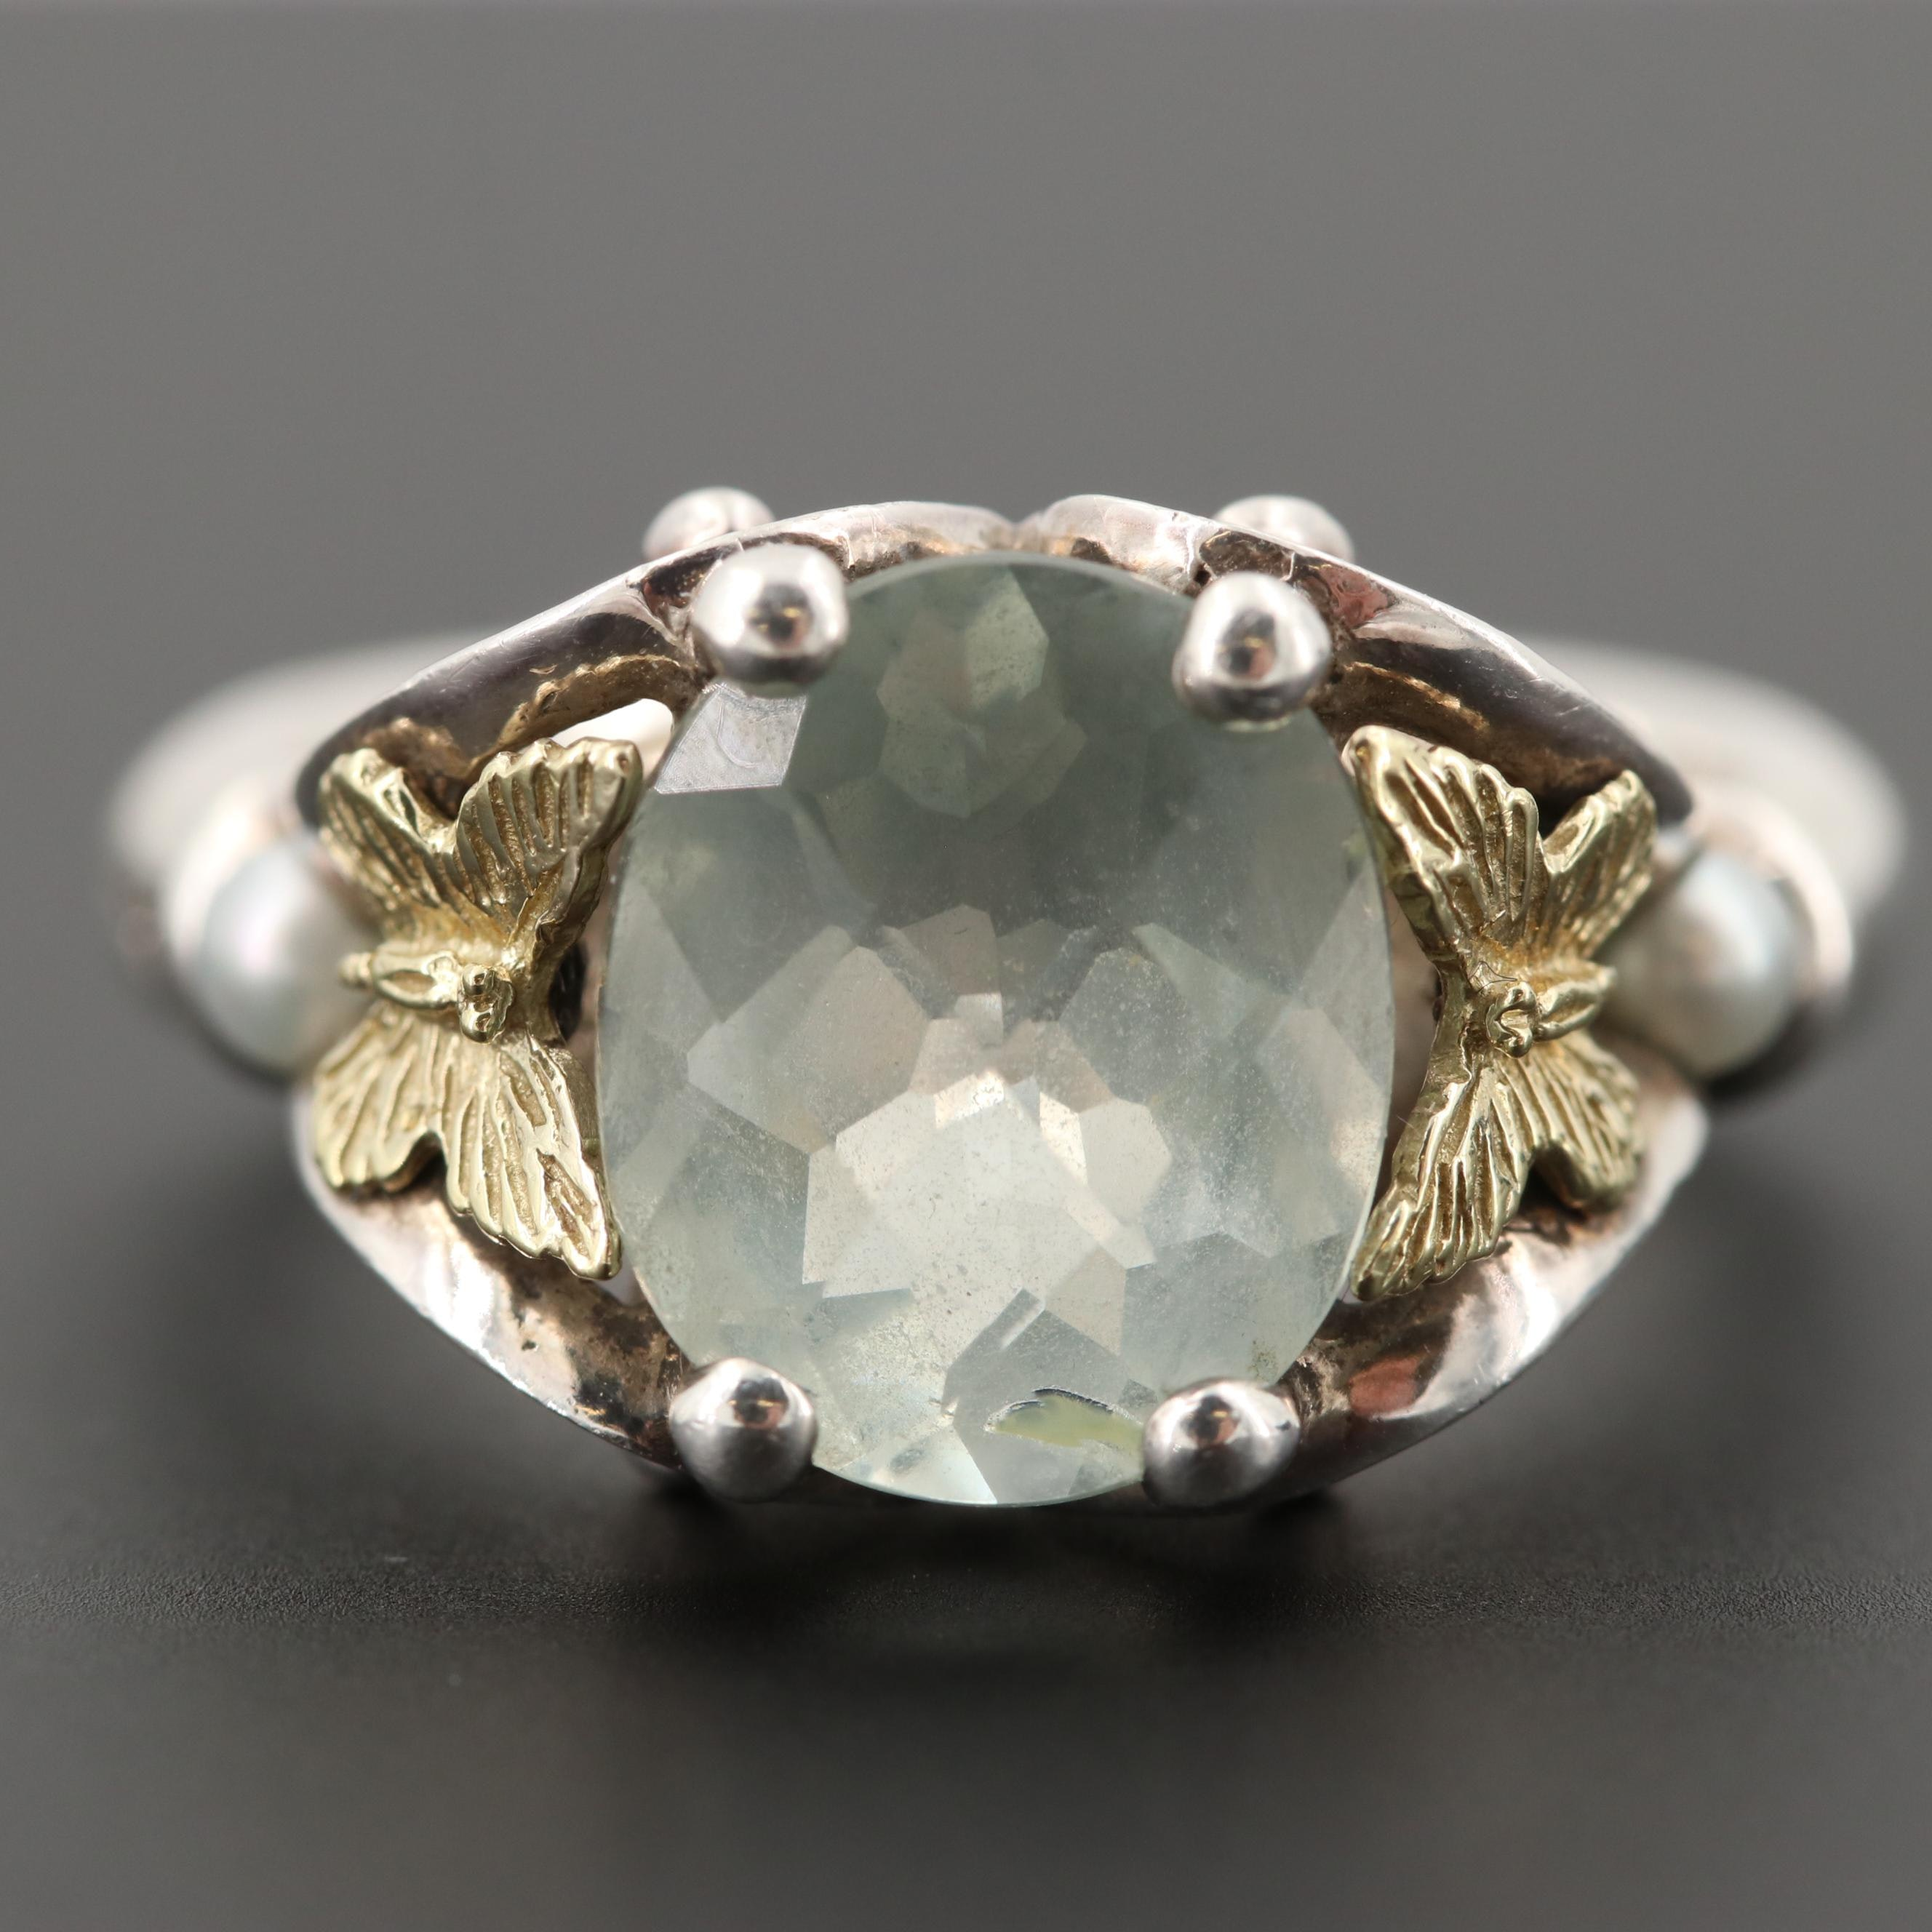 Ann King Sterling Prasiolite and Seed Pearl Ring with 18K Yellow Gold Accents